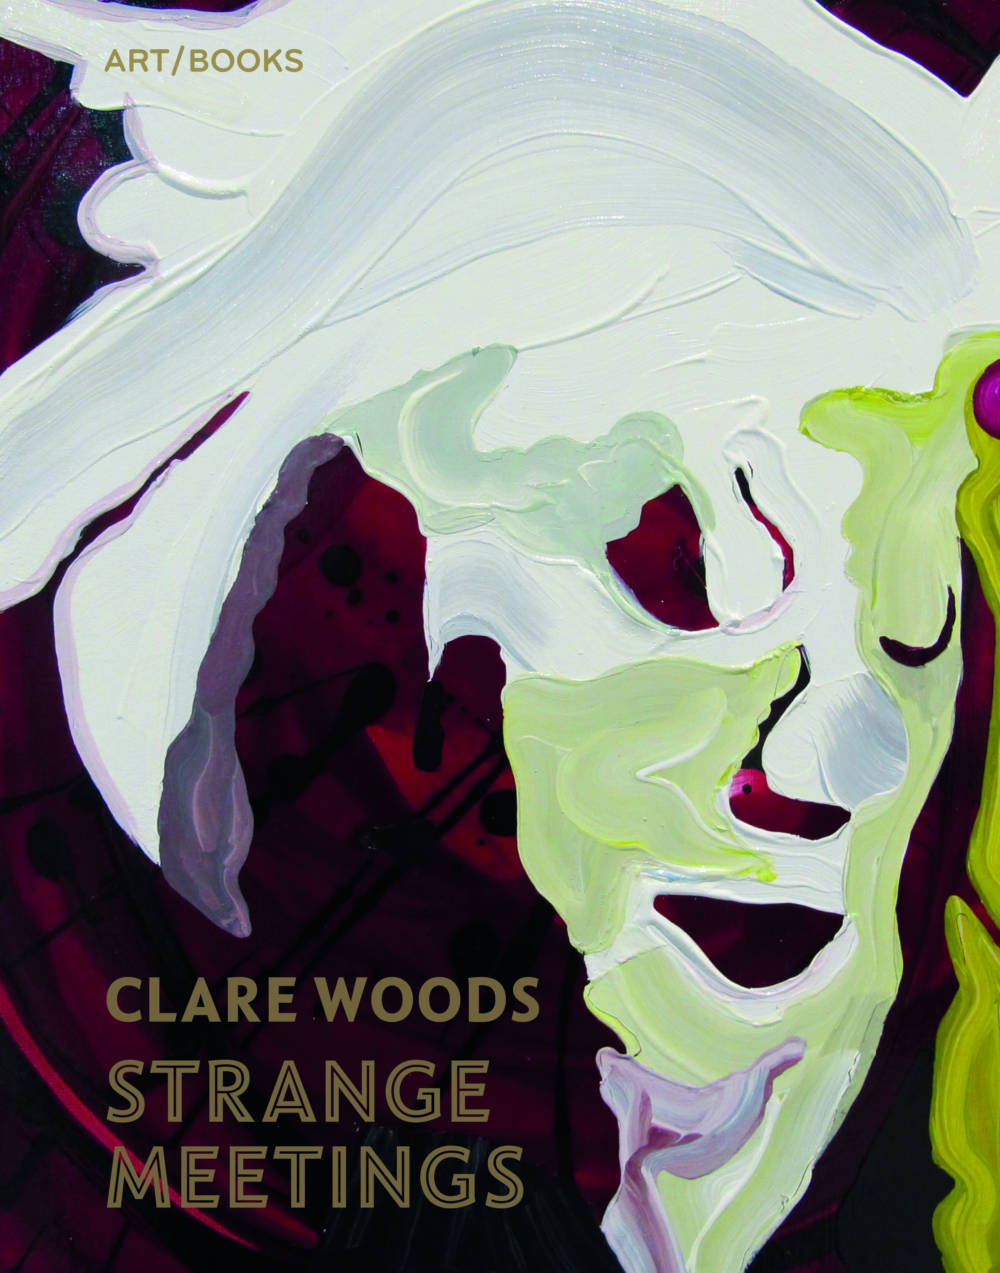 Clare Woods: Strange Meetings